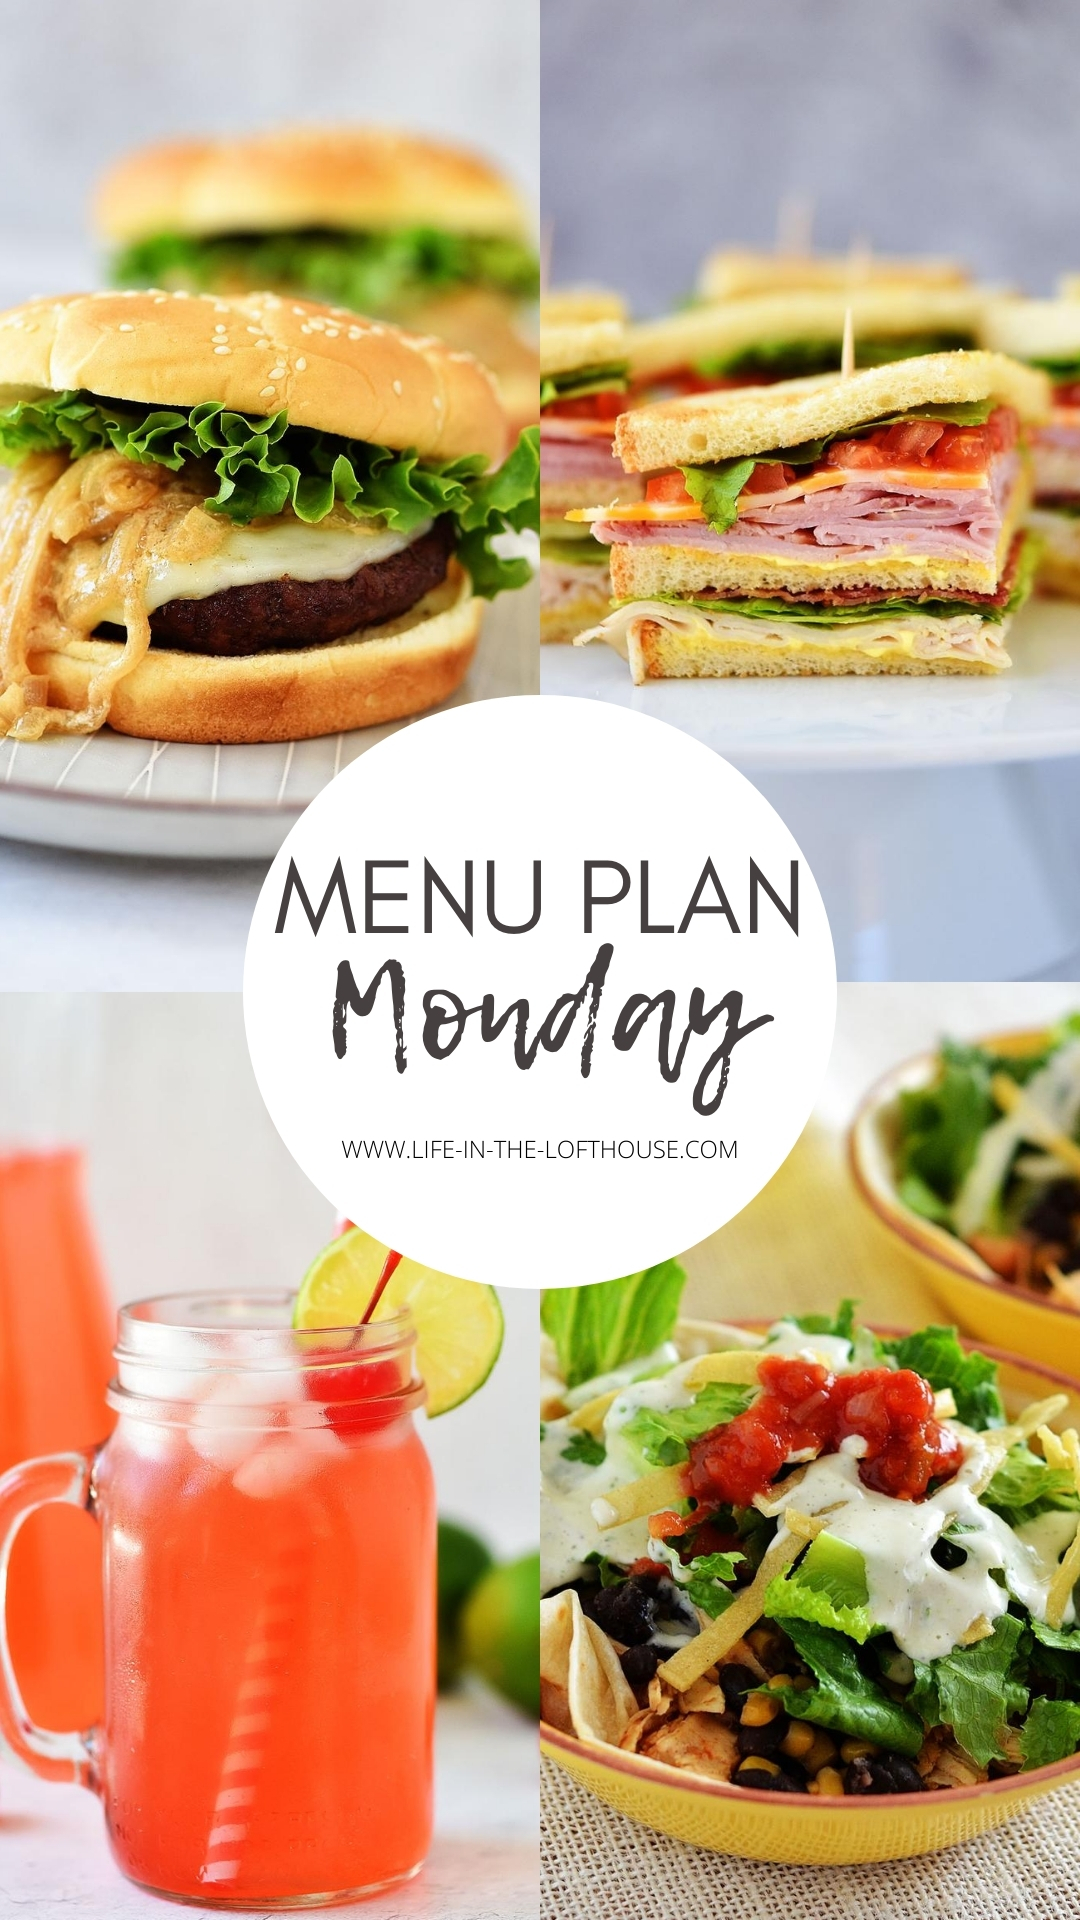 Menu Plan Monday is a list of delicious dinner recipes. Life-in-the-Lofthouse.com